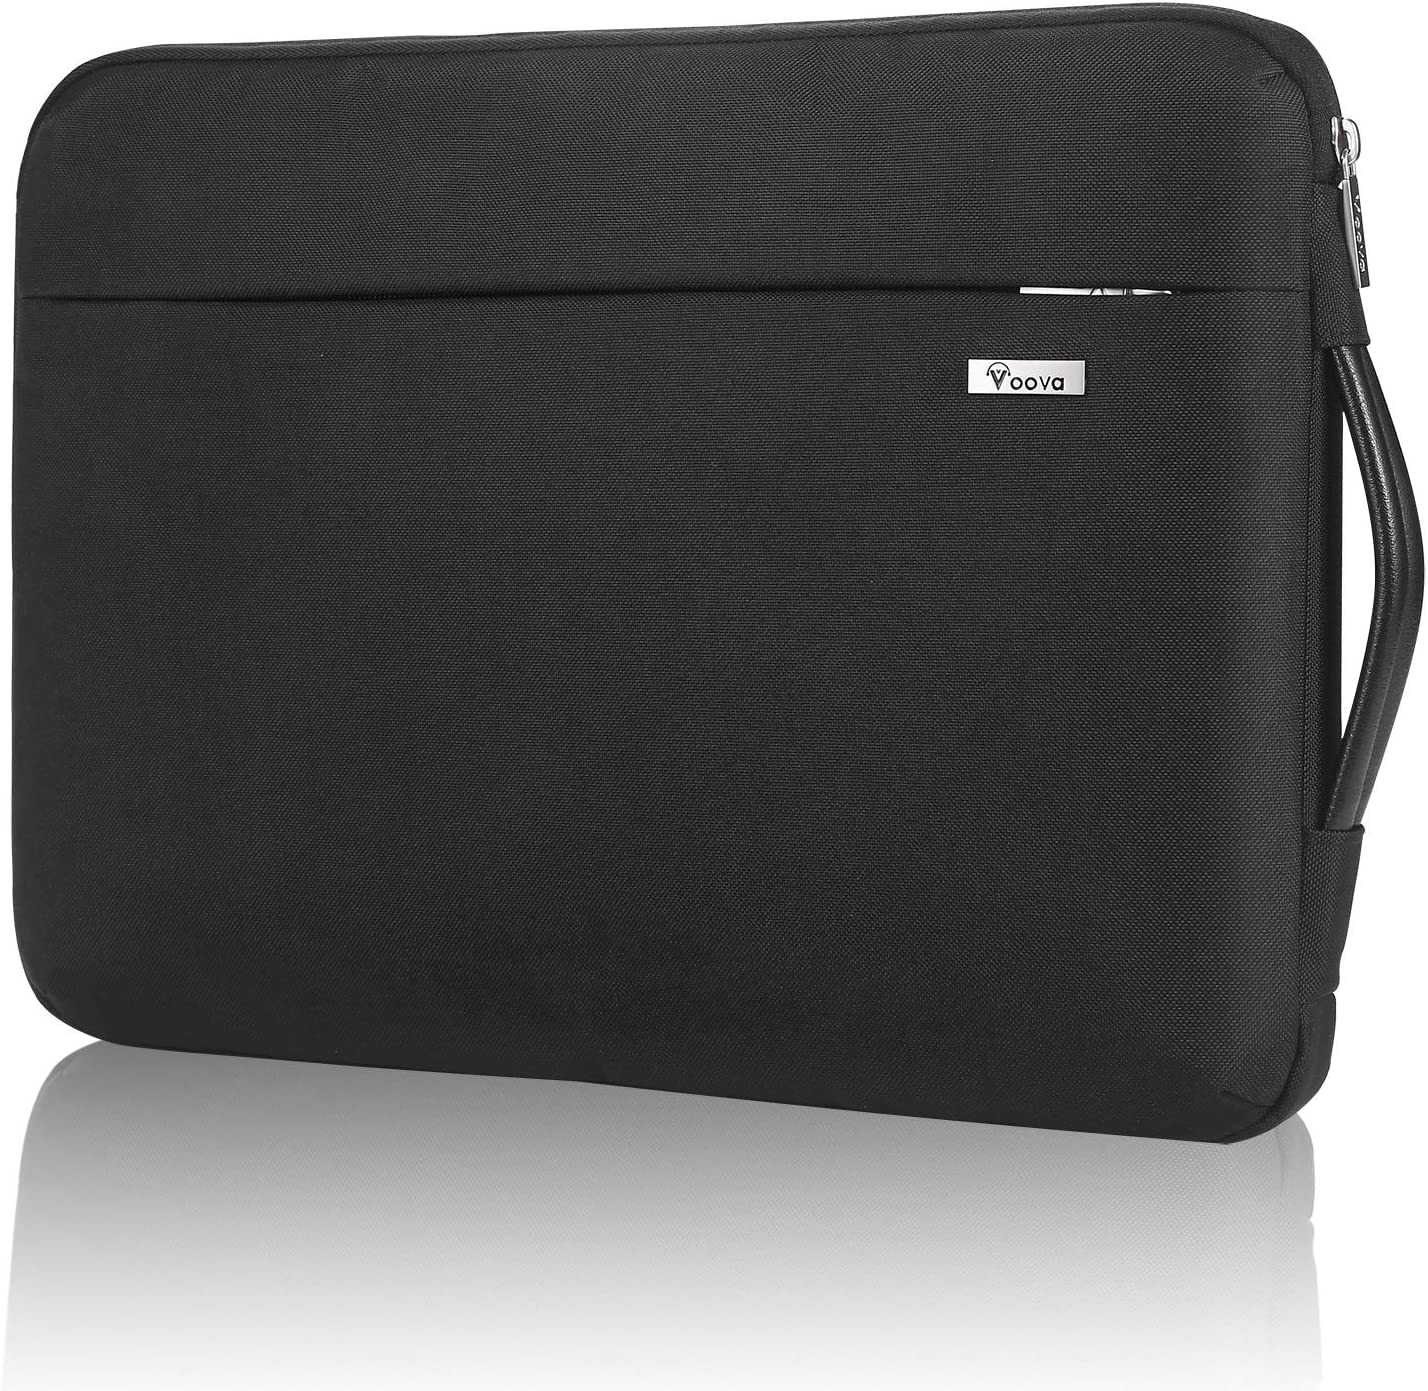 "Voova Laptop Sleeve Case 13 13.3 inch with Handle, Upgrade 360° Protective Computer Carrying Bag Compatible MacBook Air/MacBook Pro/13.5"" Surface Book 3 2, Chromebook Cover with Organizer Pocket,Black"